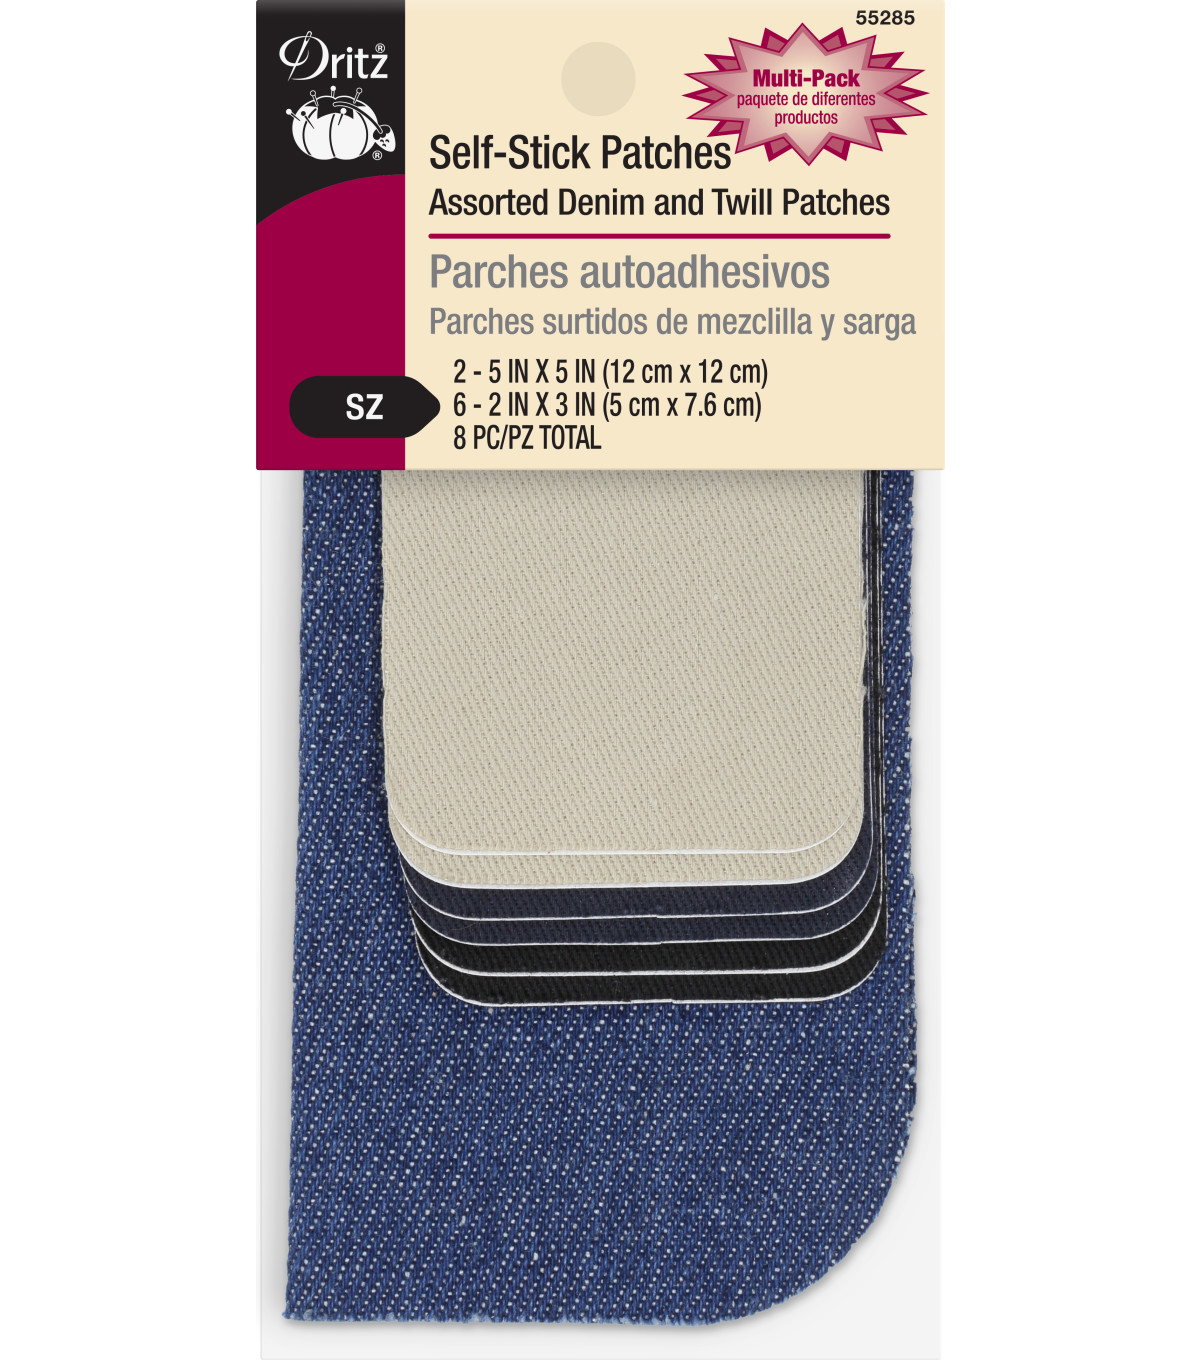 Dritz Self-Stick Denim & Twill Patches-8 pc